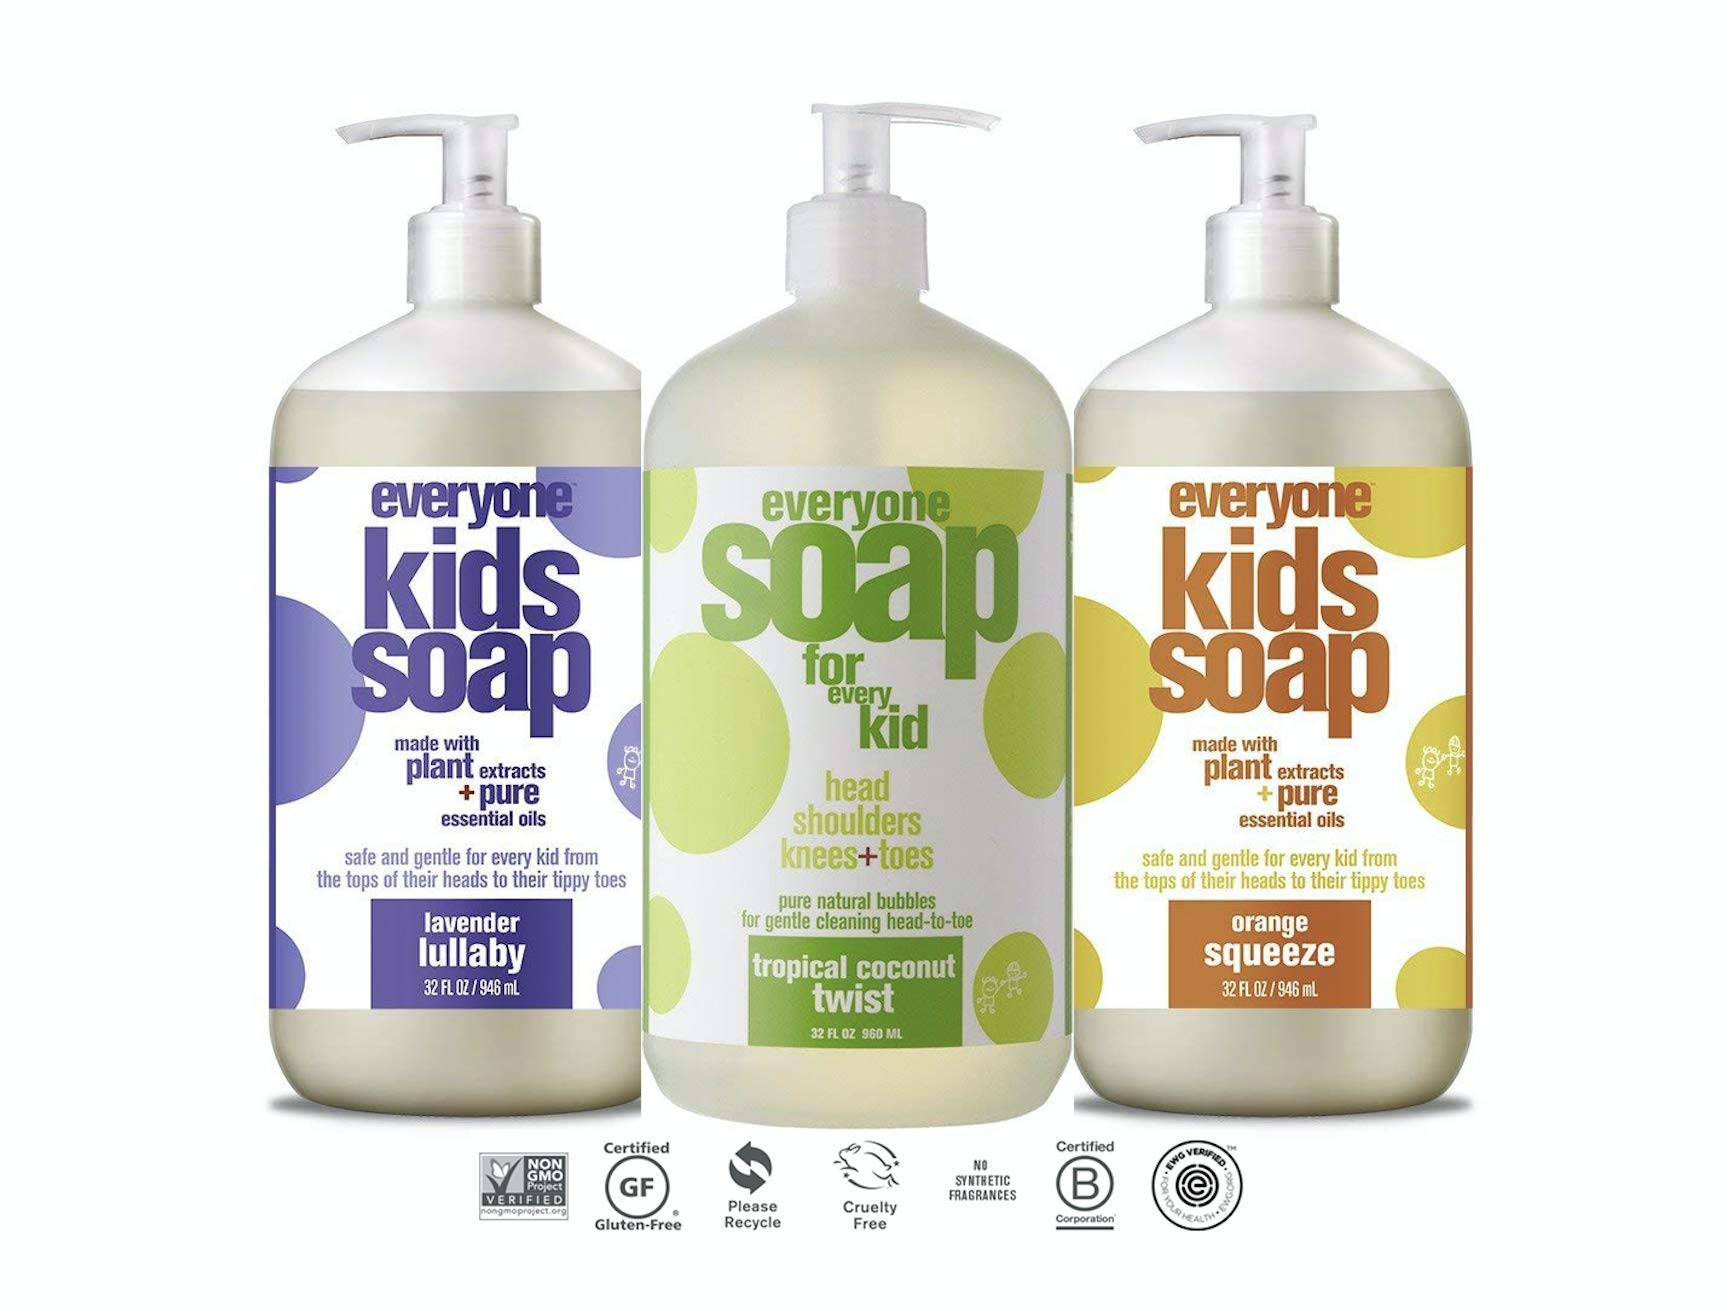 Everyone Soap For Every Kid 3 in 1 Head To Toes Variety Pack (Lavender Lullaby, Orange Squeeze, Tropical Coconut Twist) 32 Oz